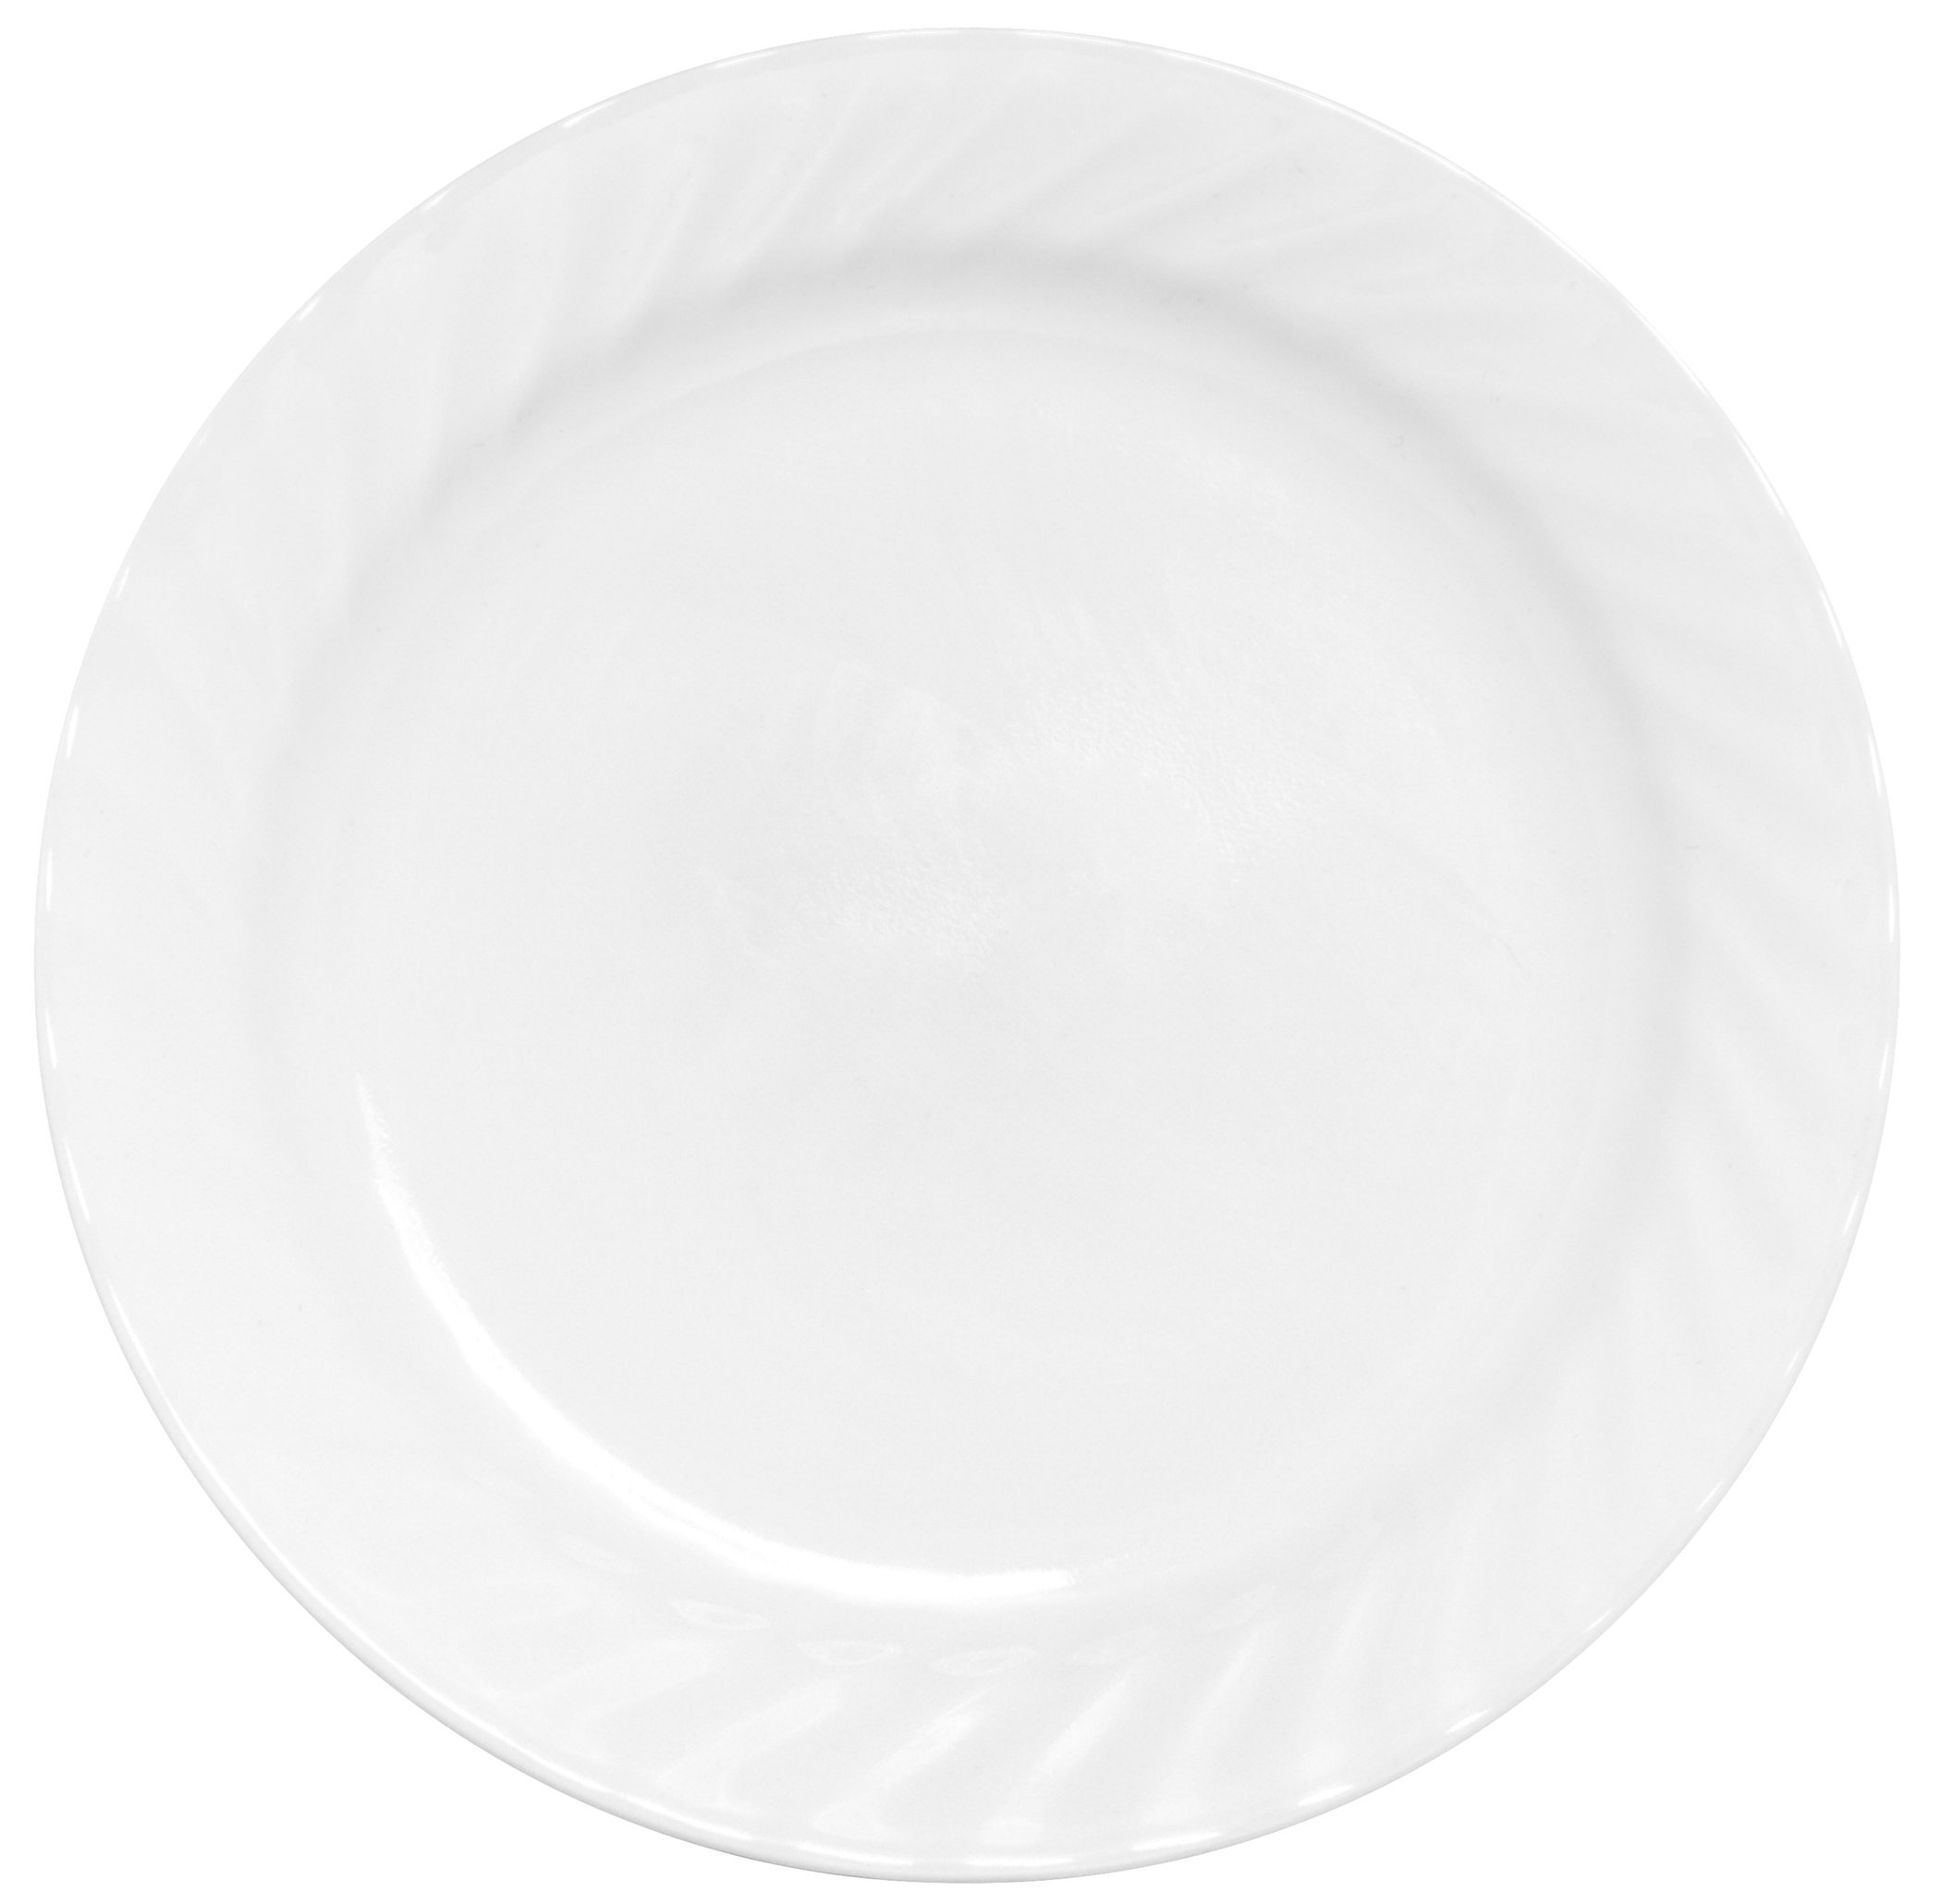 Corelle Impressions 9-Inch Luncheon Plate, Enhancements (6017649)